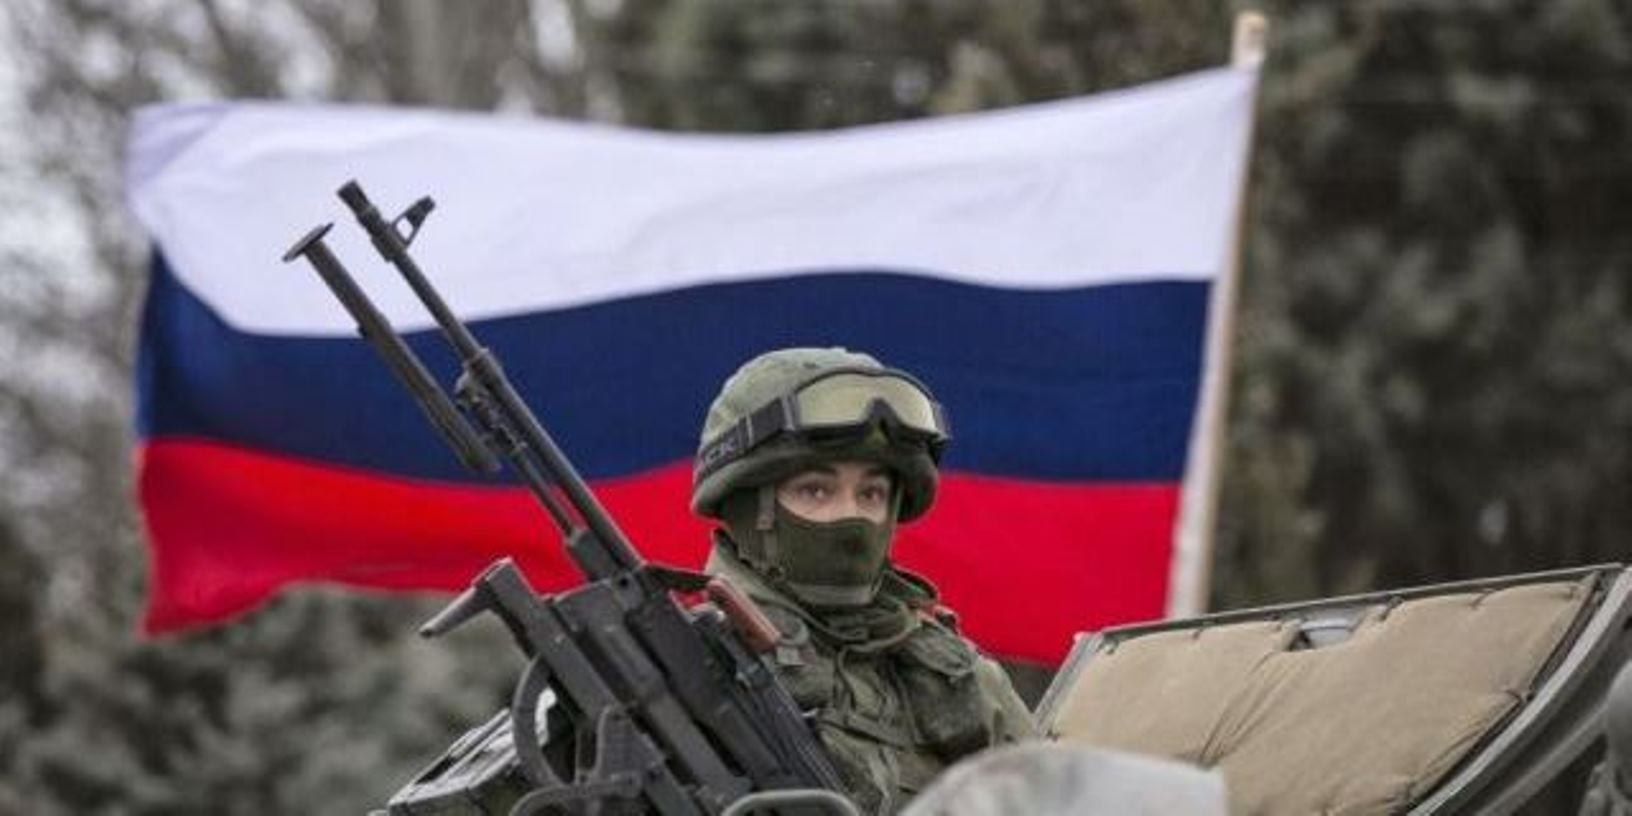 Leading analysts on the situation in Crimea